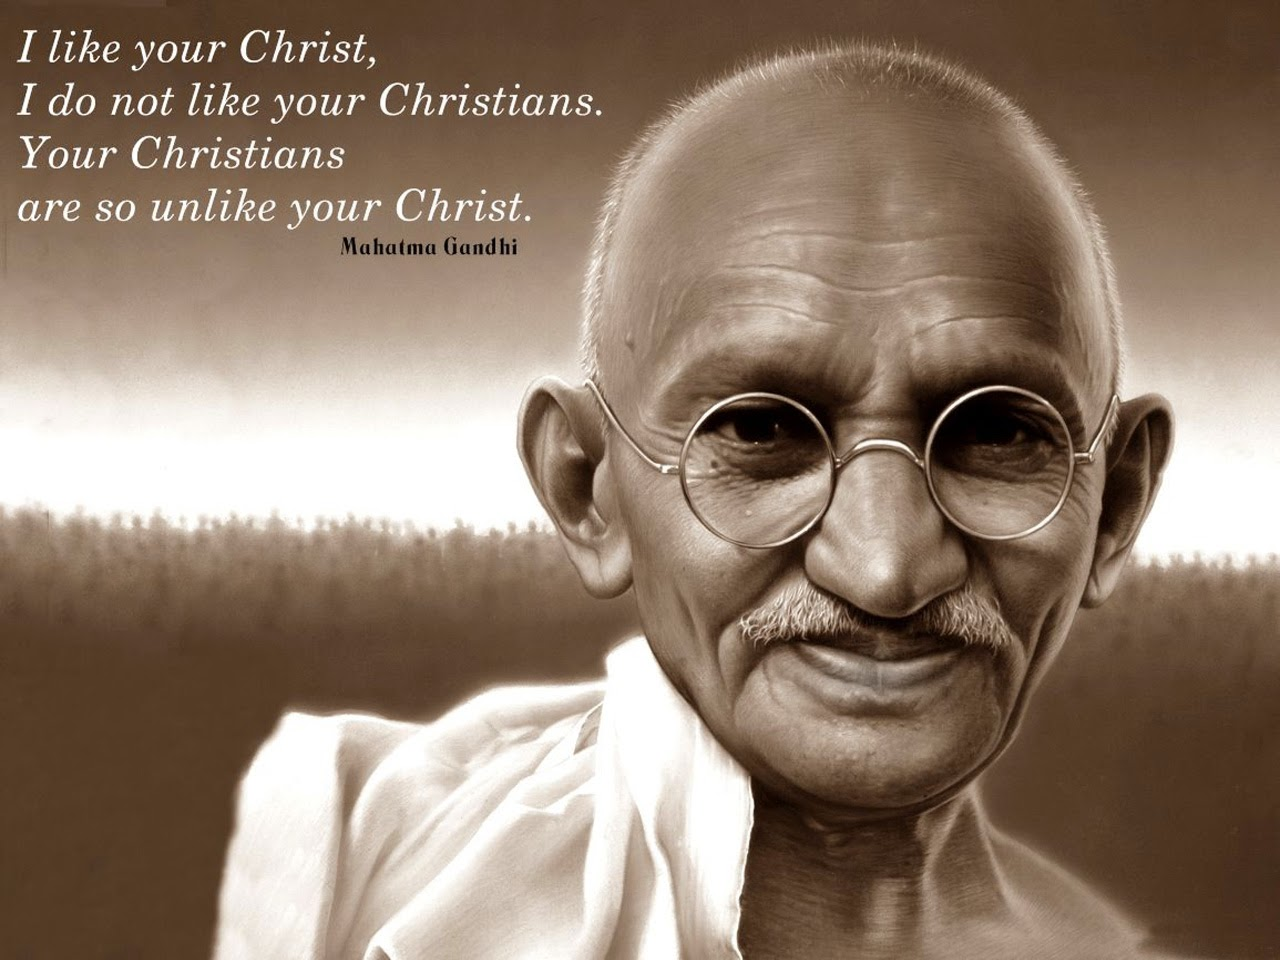 Quotes By Famous People Religion Quotes And Sayingfamous People  Poetry Likers